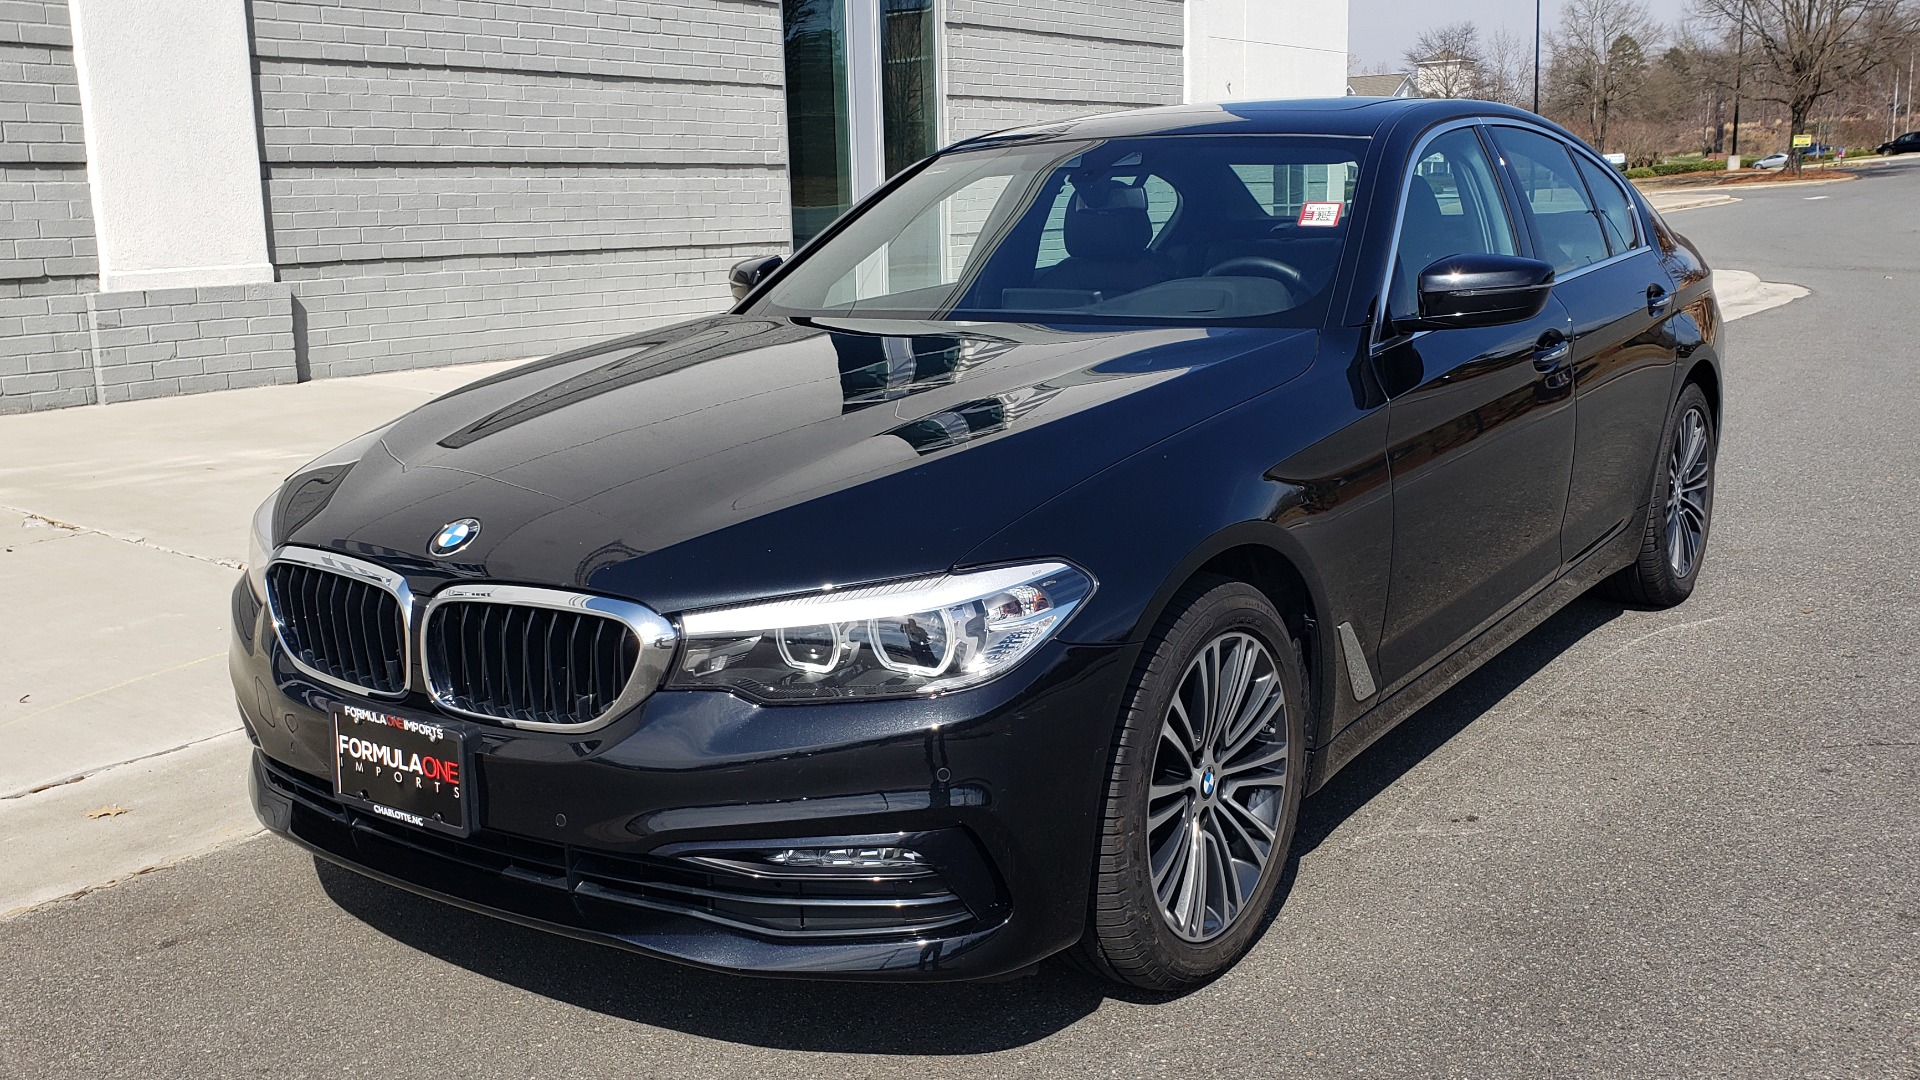 Used 2018 BMW 5 SERIES 530I XDRIVE PREMIUM / NAV / SUNROOF / DRVR ASST / REARVIEW for sale Sold at Formula Imports in Charlotte NC 28227 1